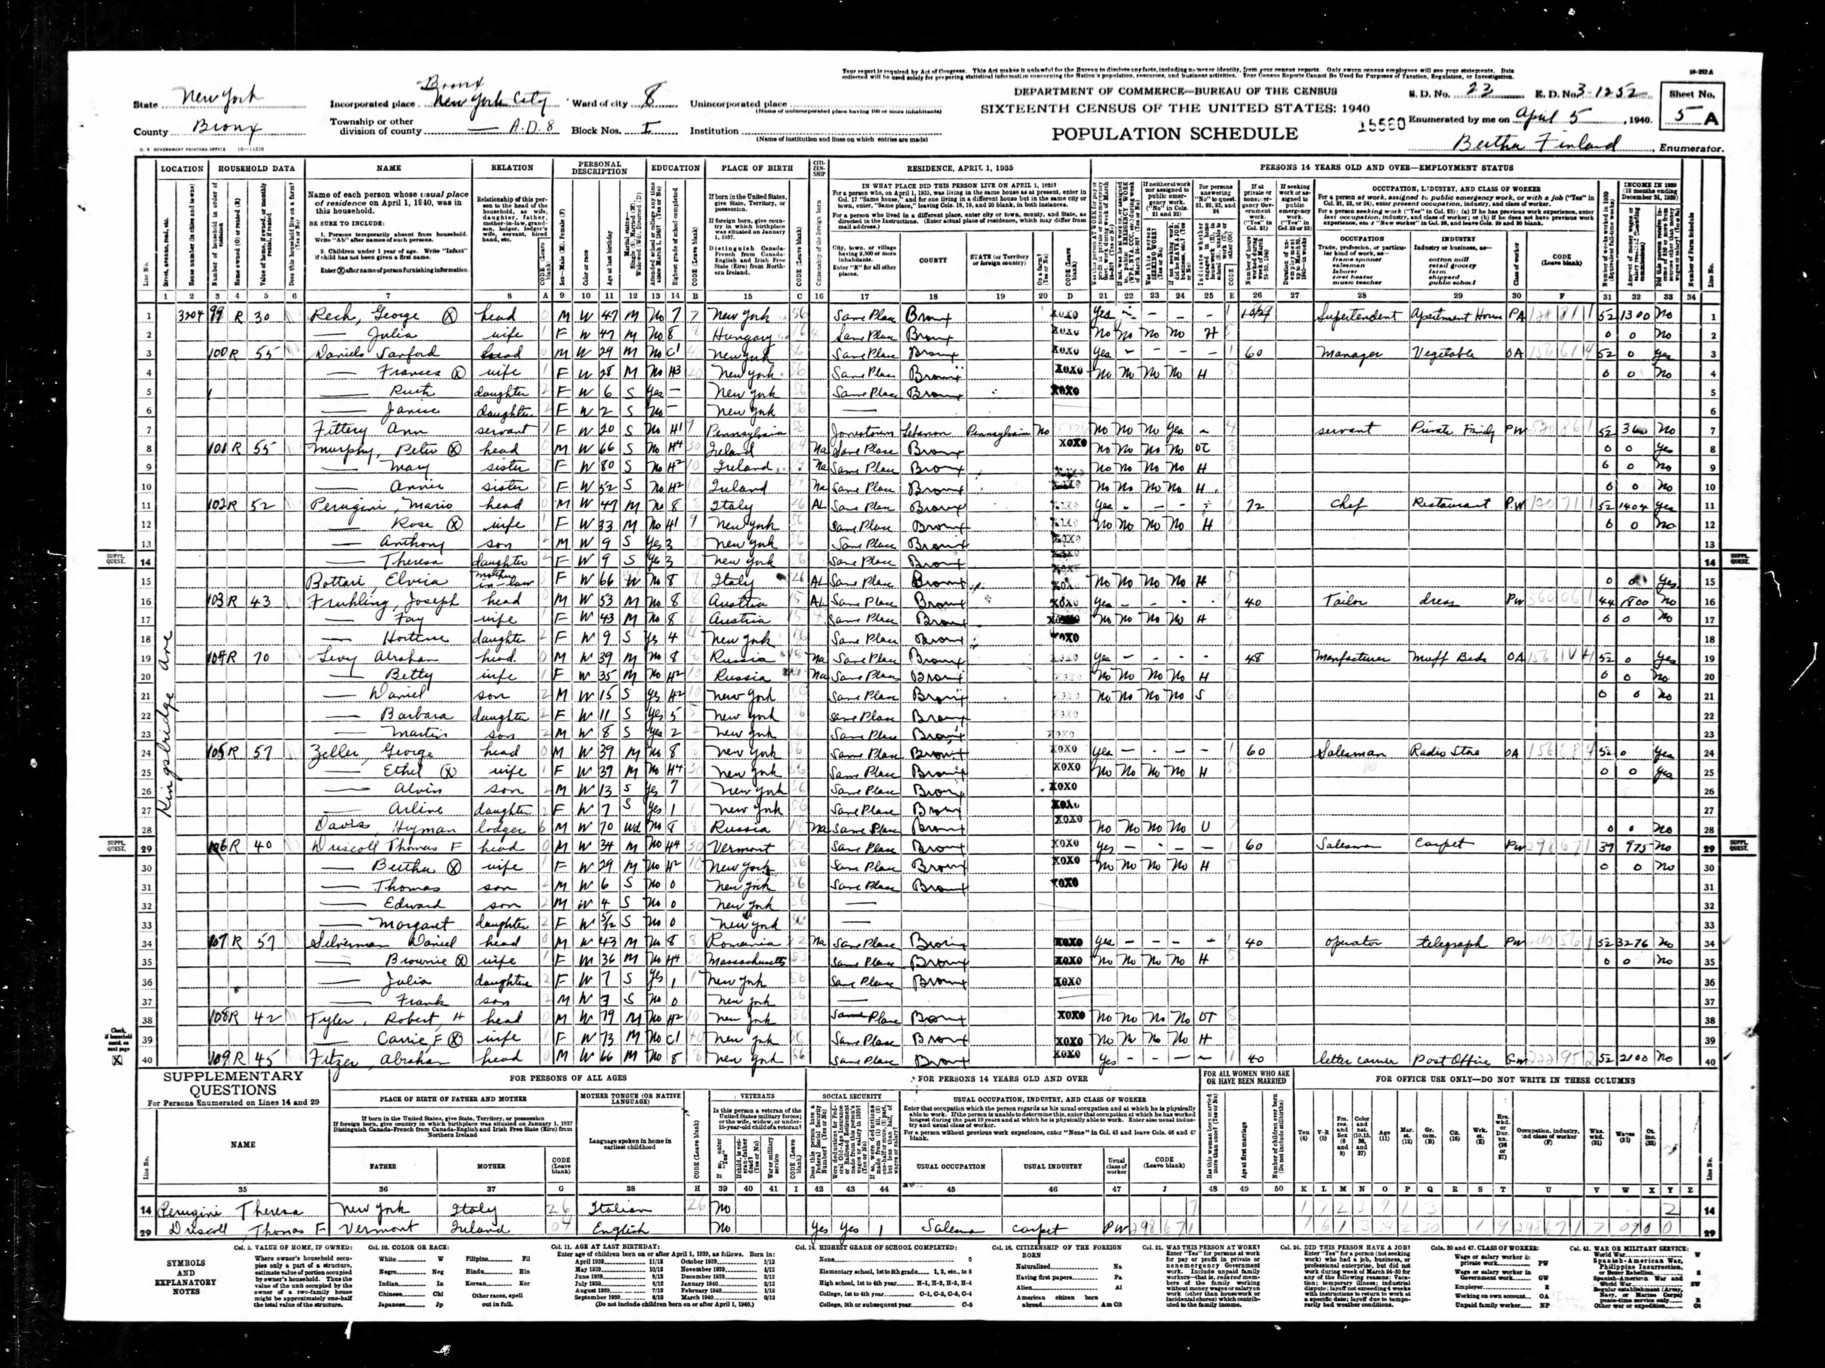 1940 United States Federal Census of Daniel Silverman Family